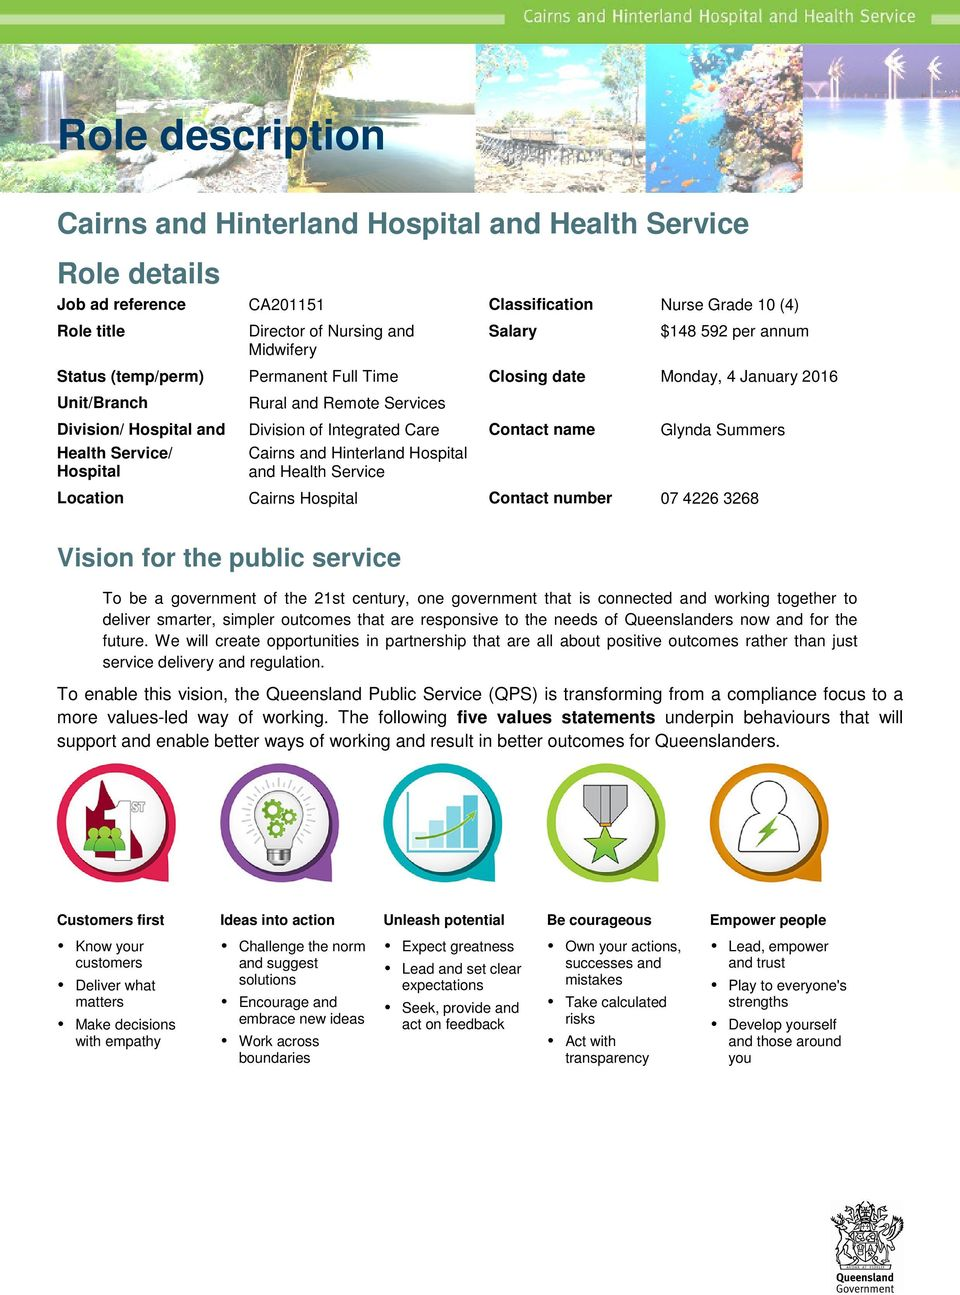 Care Cairns and Hinterland Hospital and Health Service Contact name Glynda Summers Location Cairns Hospital Contact number 07 4226 3268 Vision for the public service To be a government of the 21st